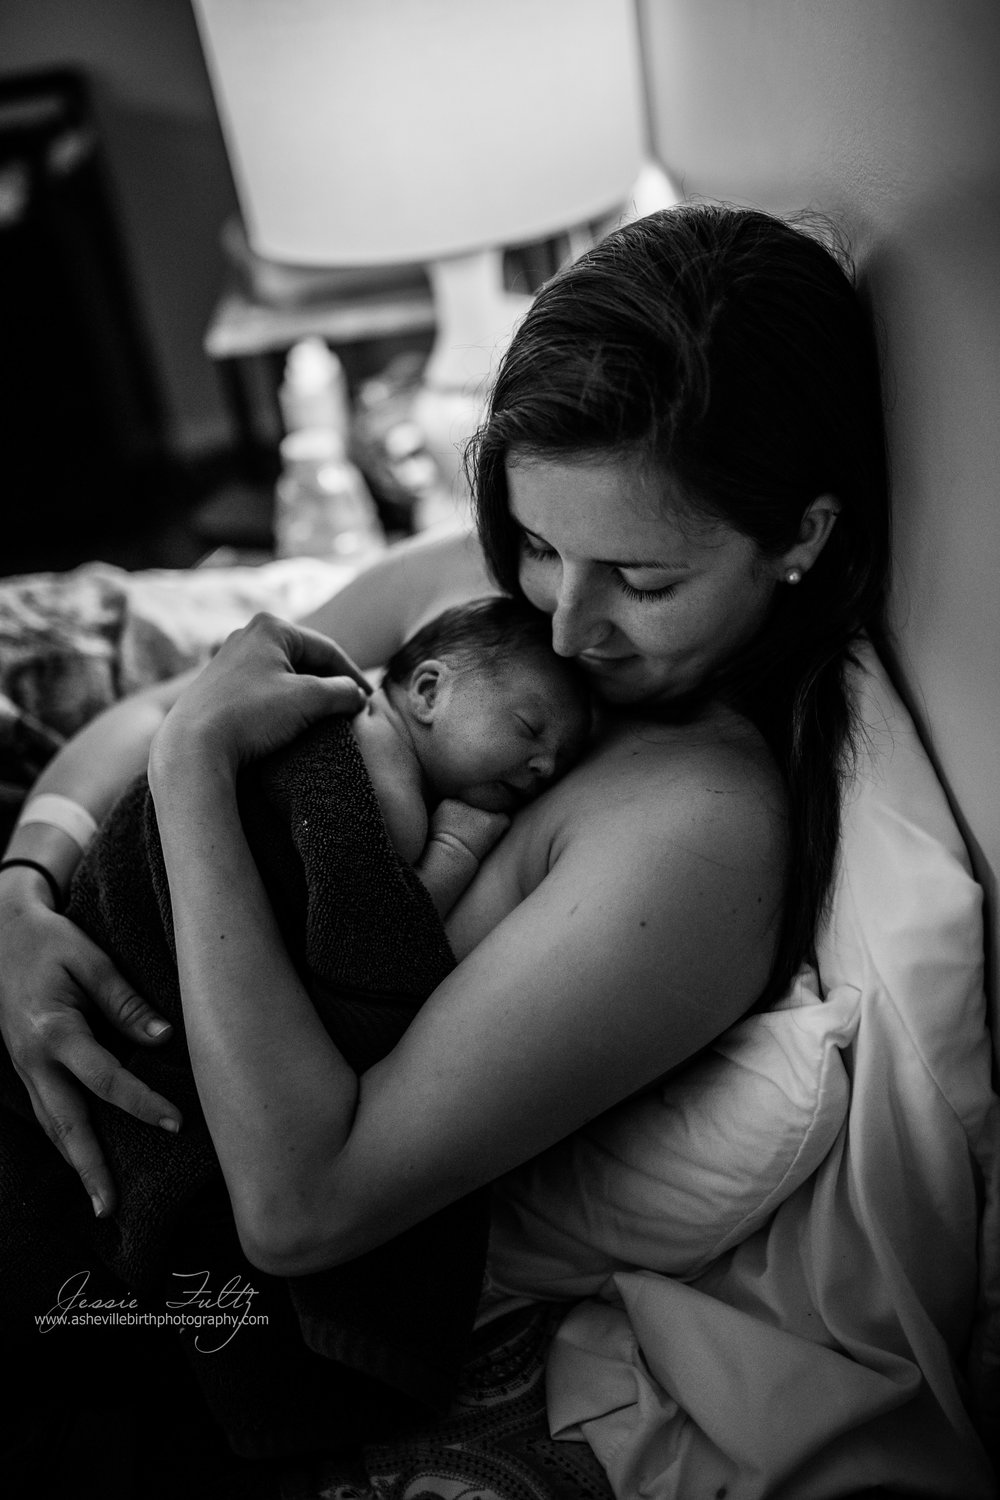 a black and white photo of a mom snuggling her baby right after birth